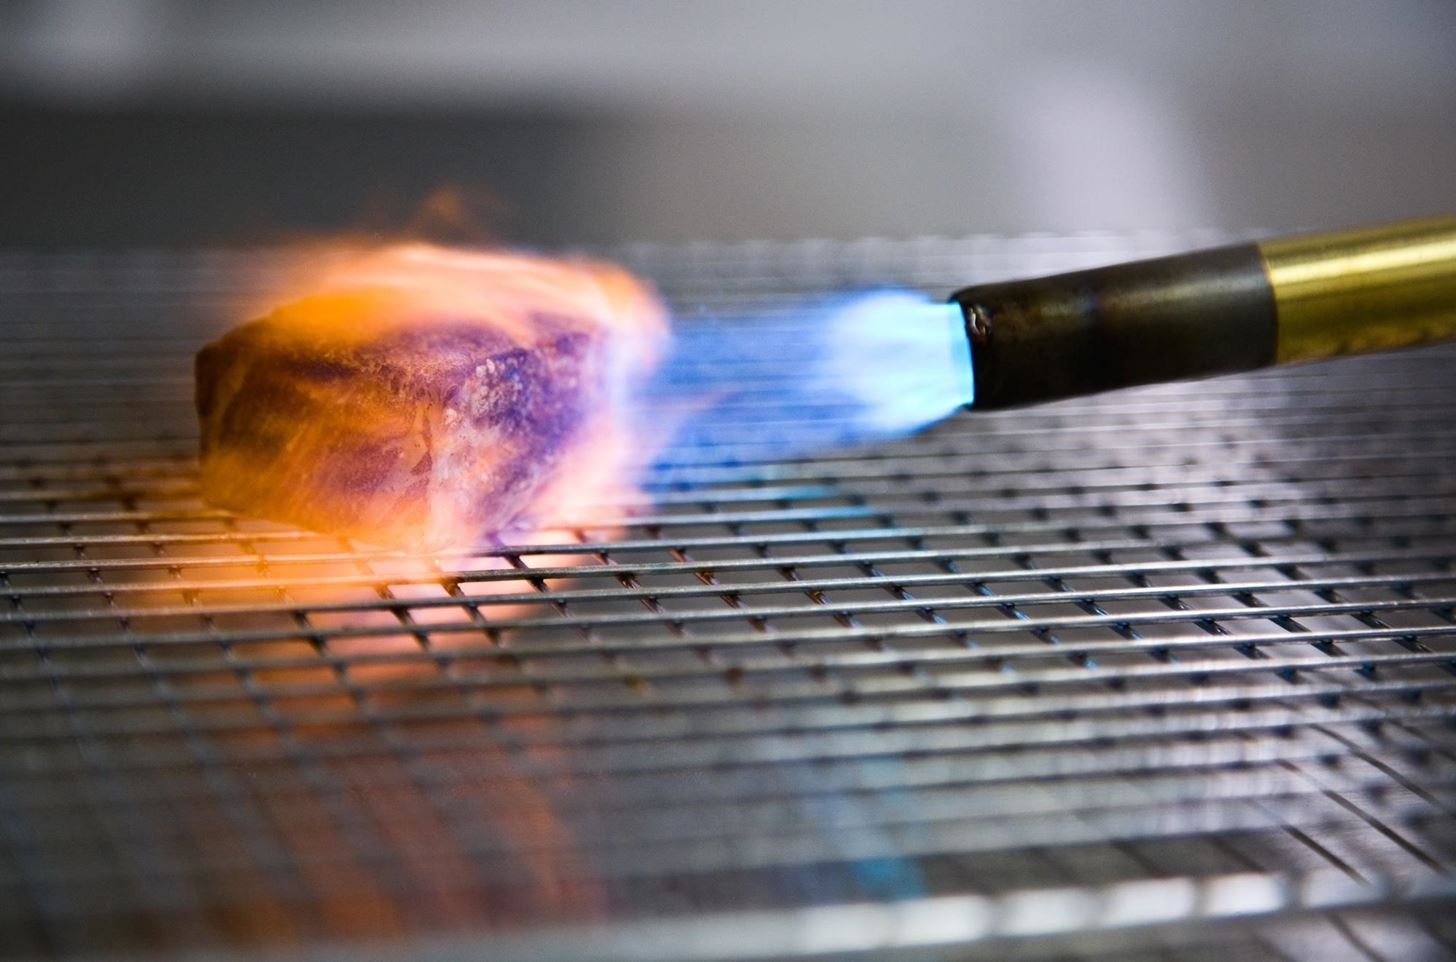 Blowtorches Aren't Just for Crème Brûlée